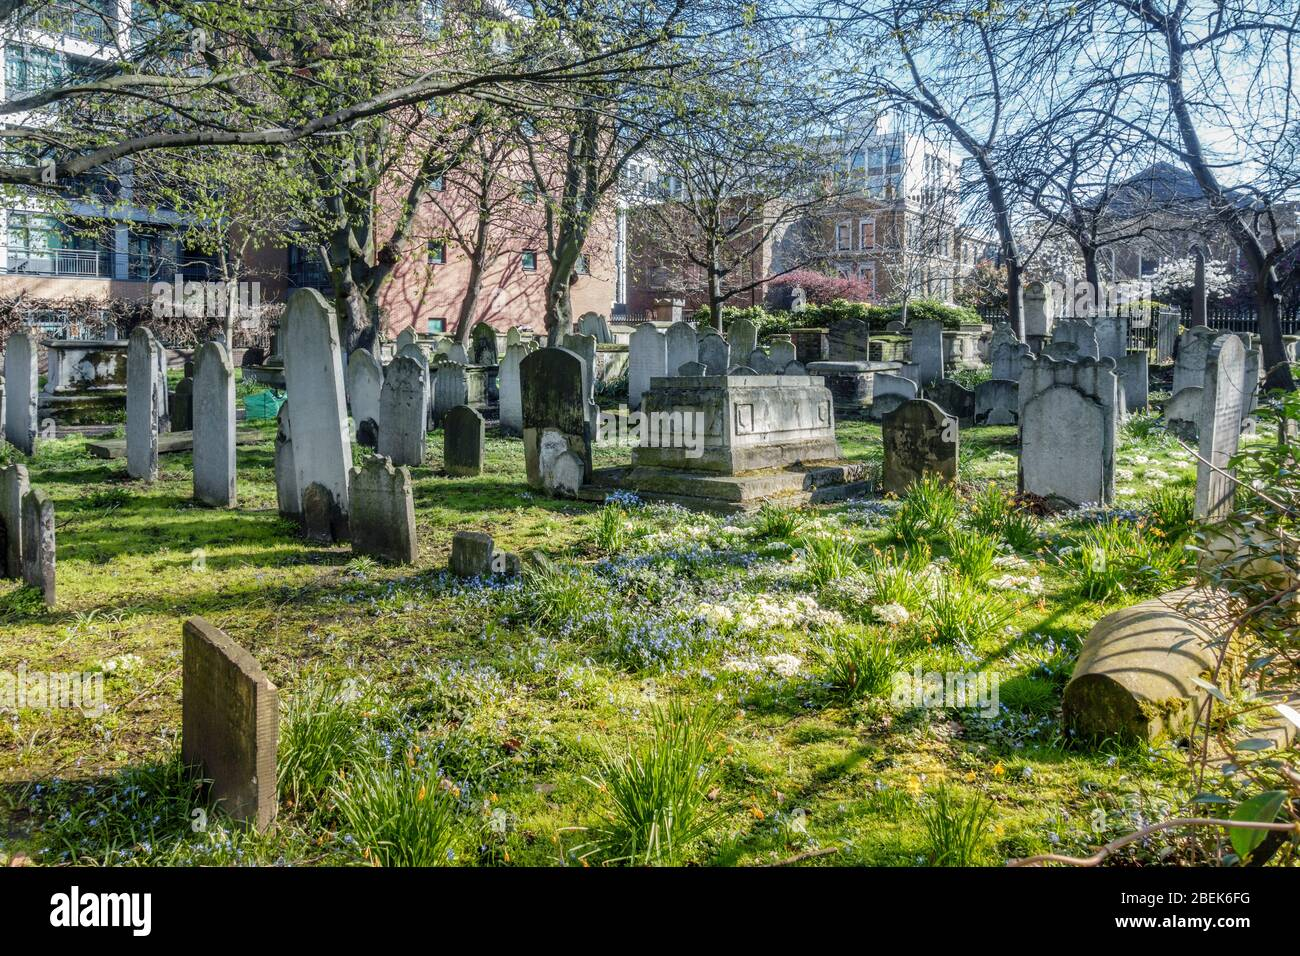 UK, England, London. Bunhill Fields: an ancient burial ground where John Bunyan, William Blake and Daniel Defoe are buried Stock Photo